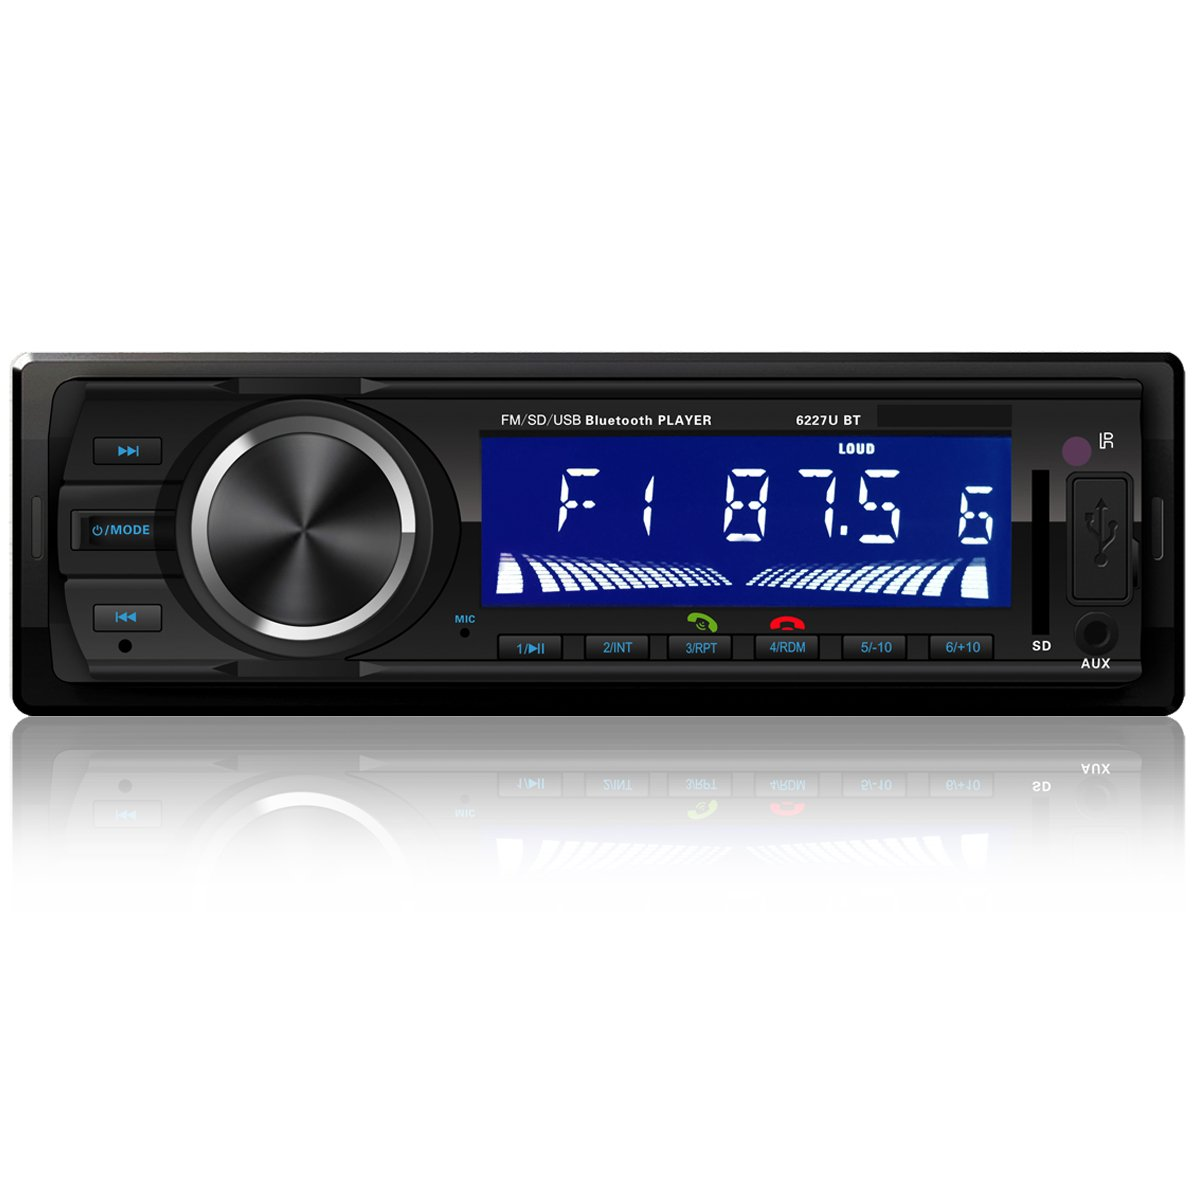 FORE FR-6227 Single Din Vehicle Bluetooth Digital Music MP3 Player Receiver with Wireless Remote Color Black